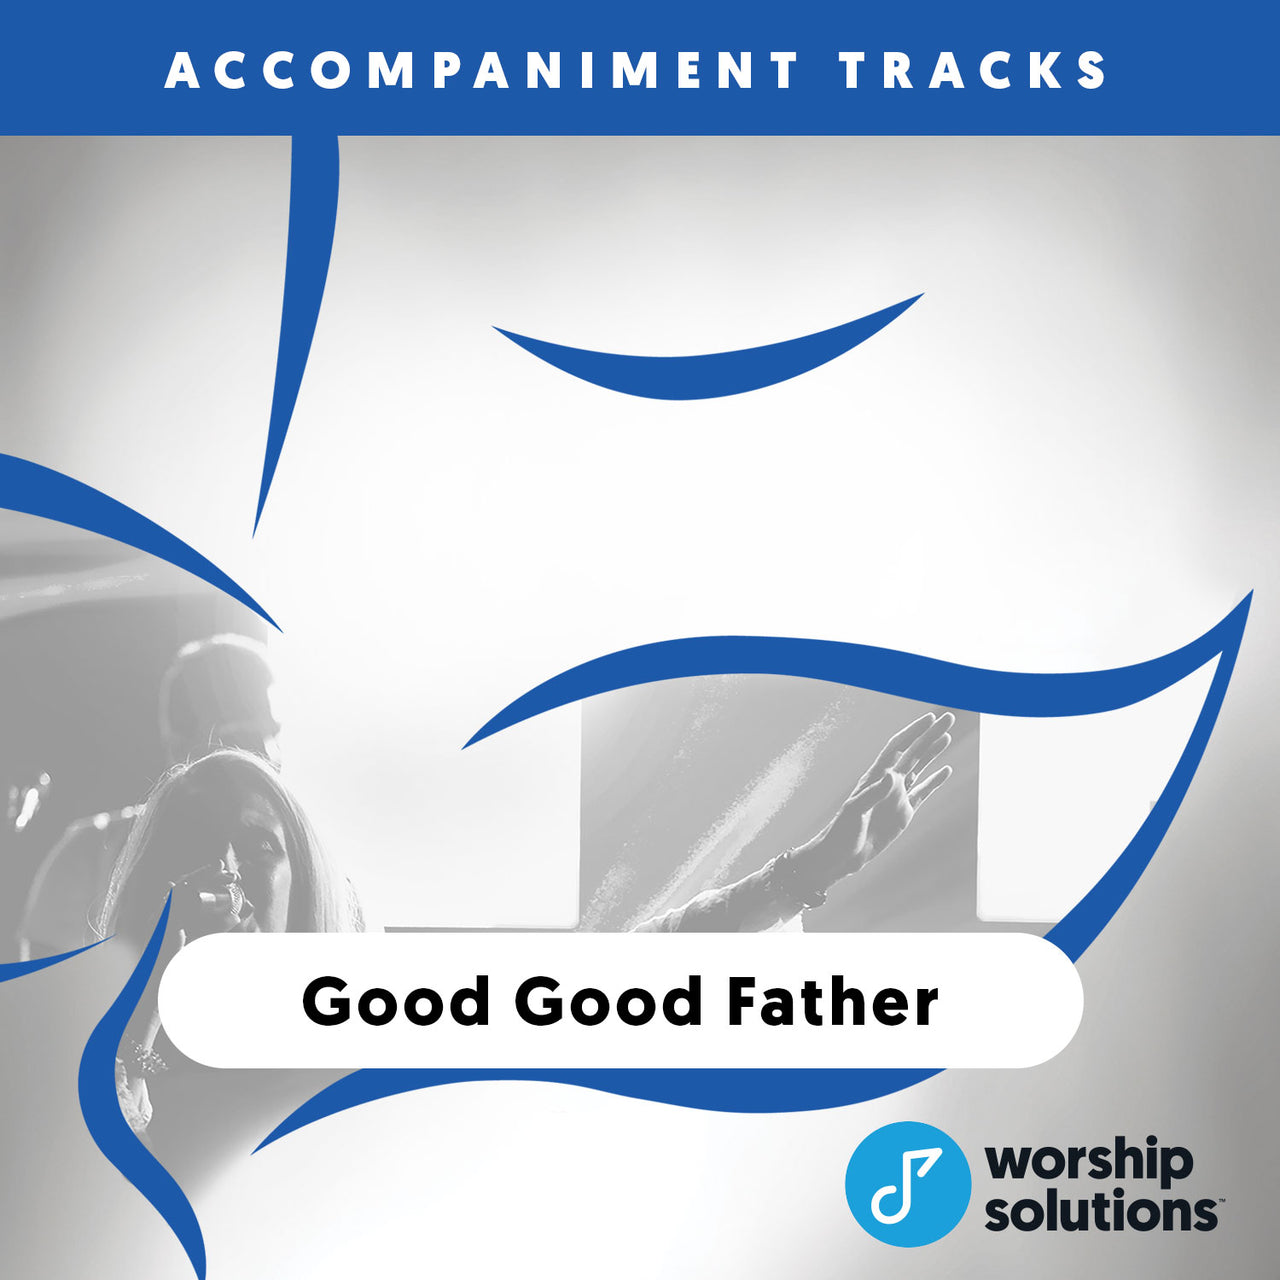 Good, Good Father, Accompaniment Track